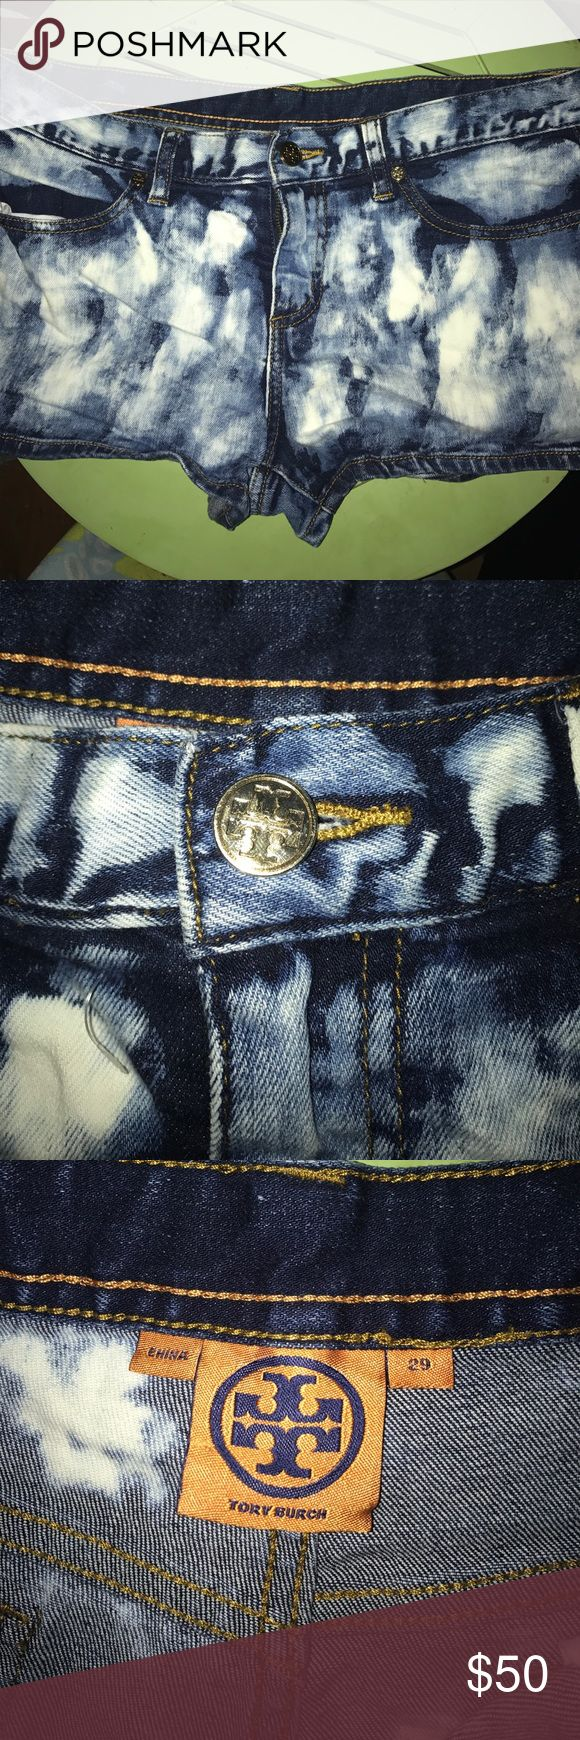 Bleached jean shorts Tory burch, bleached jean shorts Tory Burch Shorts Jean Shorts